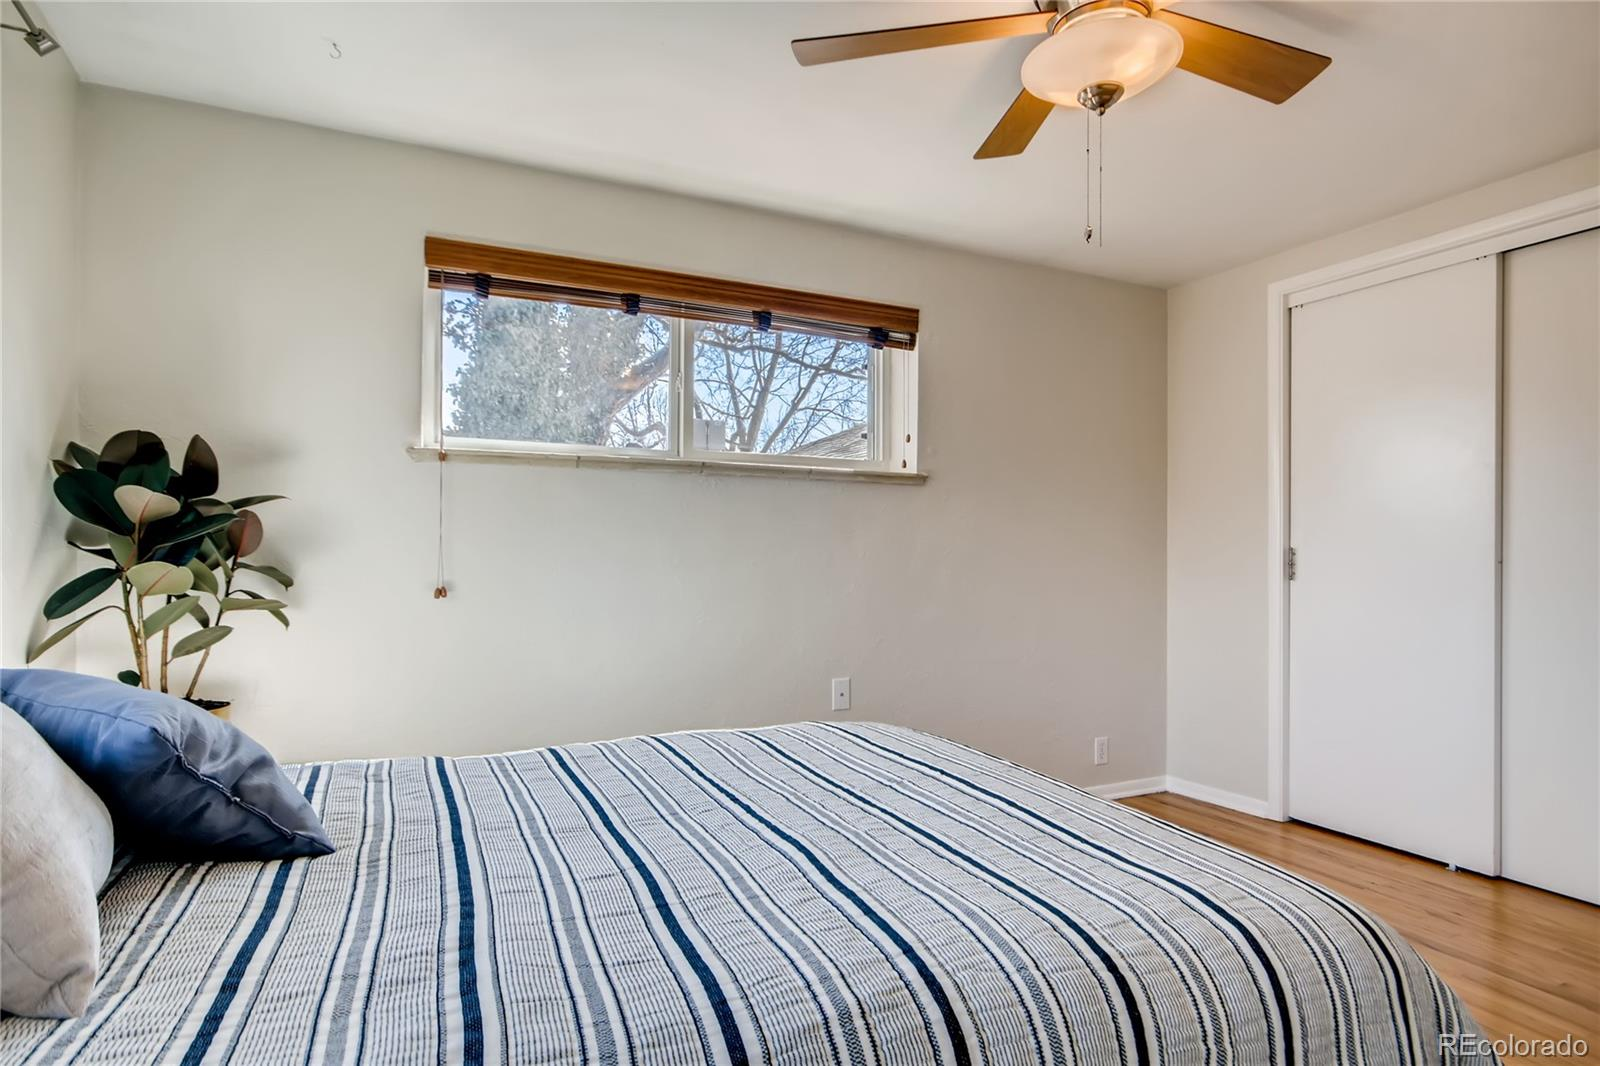 MLS# 9197299 - 25 - 10511 W 22nd Place, Lakewood, CO 80215